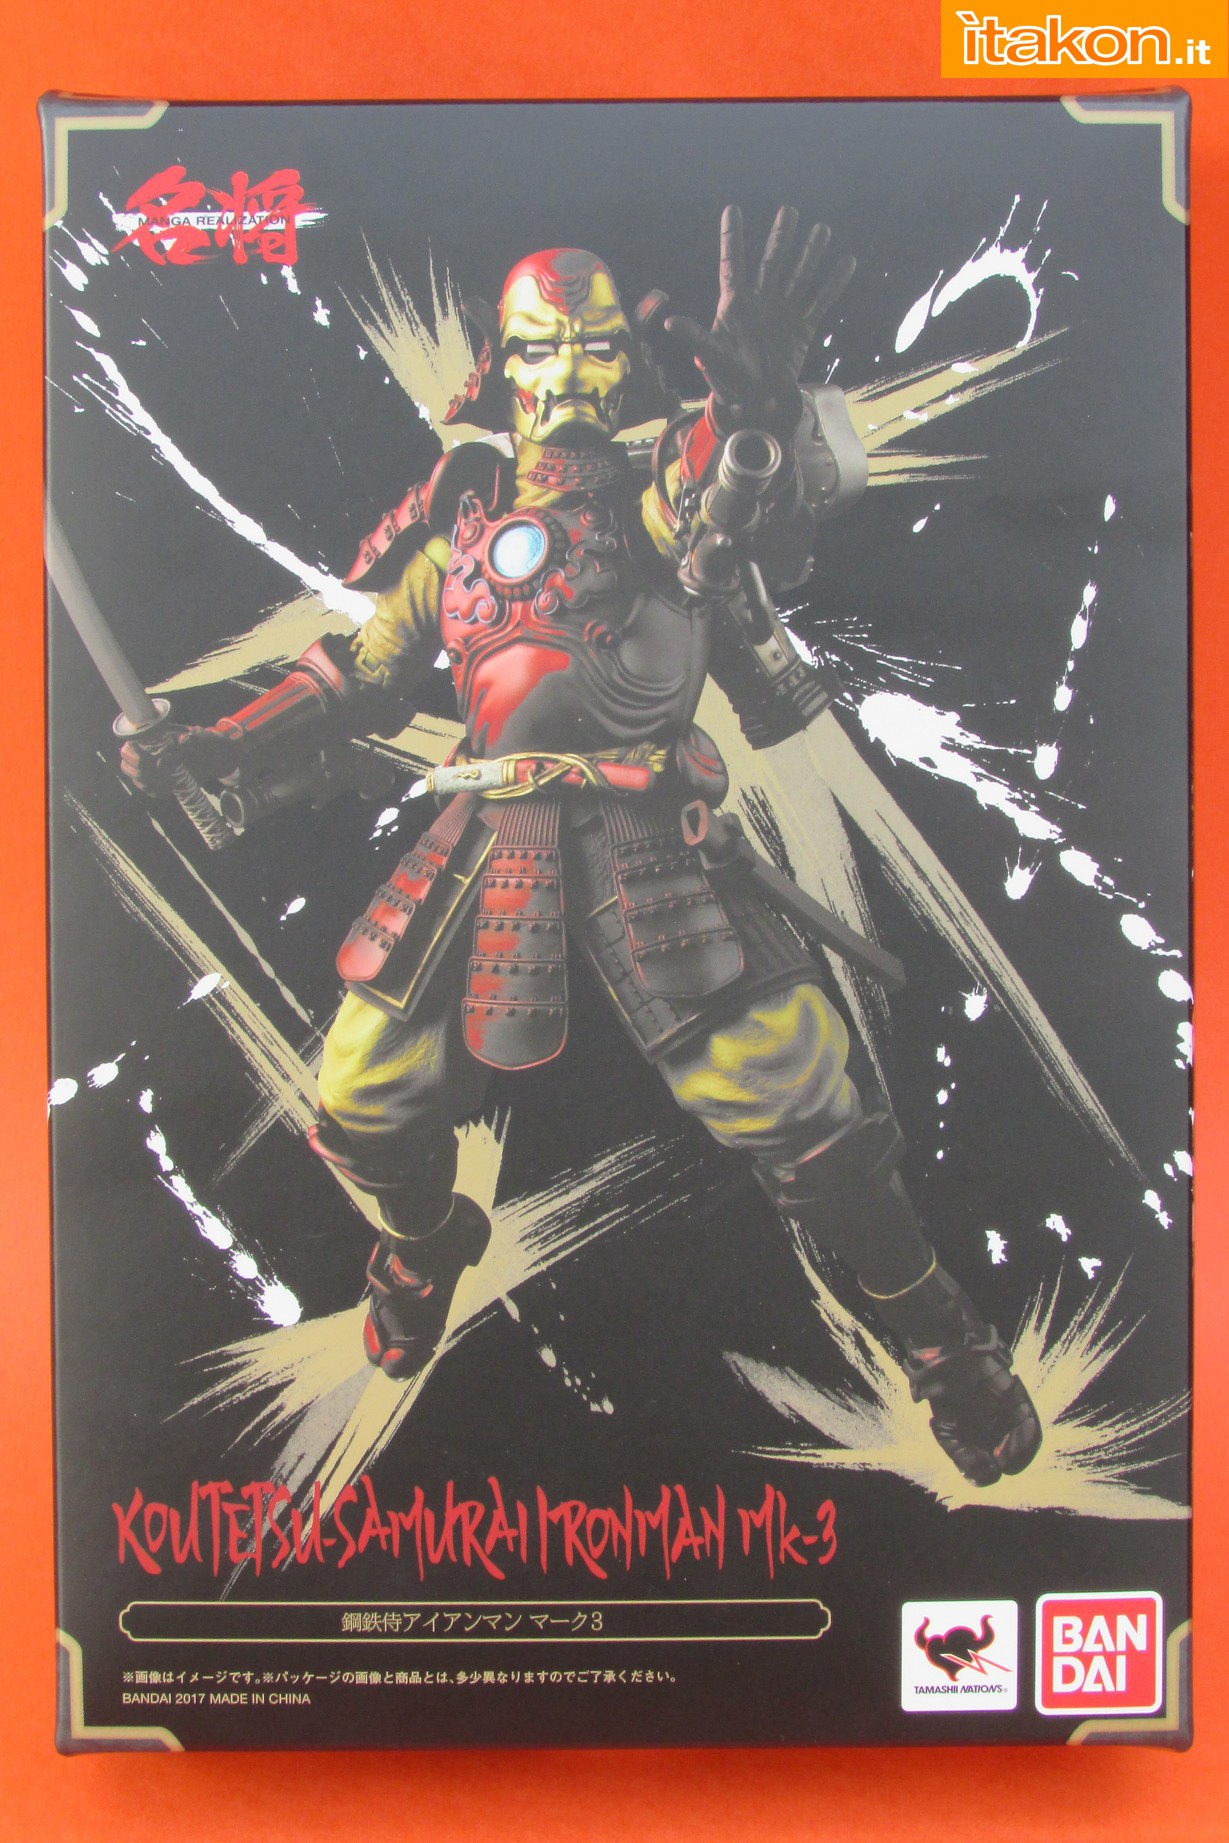 Link a Marvel Comics Koutetsu Samurai Iron Man Mark 3 Meishou MANGA REALIZATION review Bandai Itakon.it01